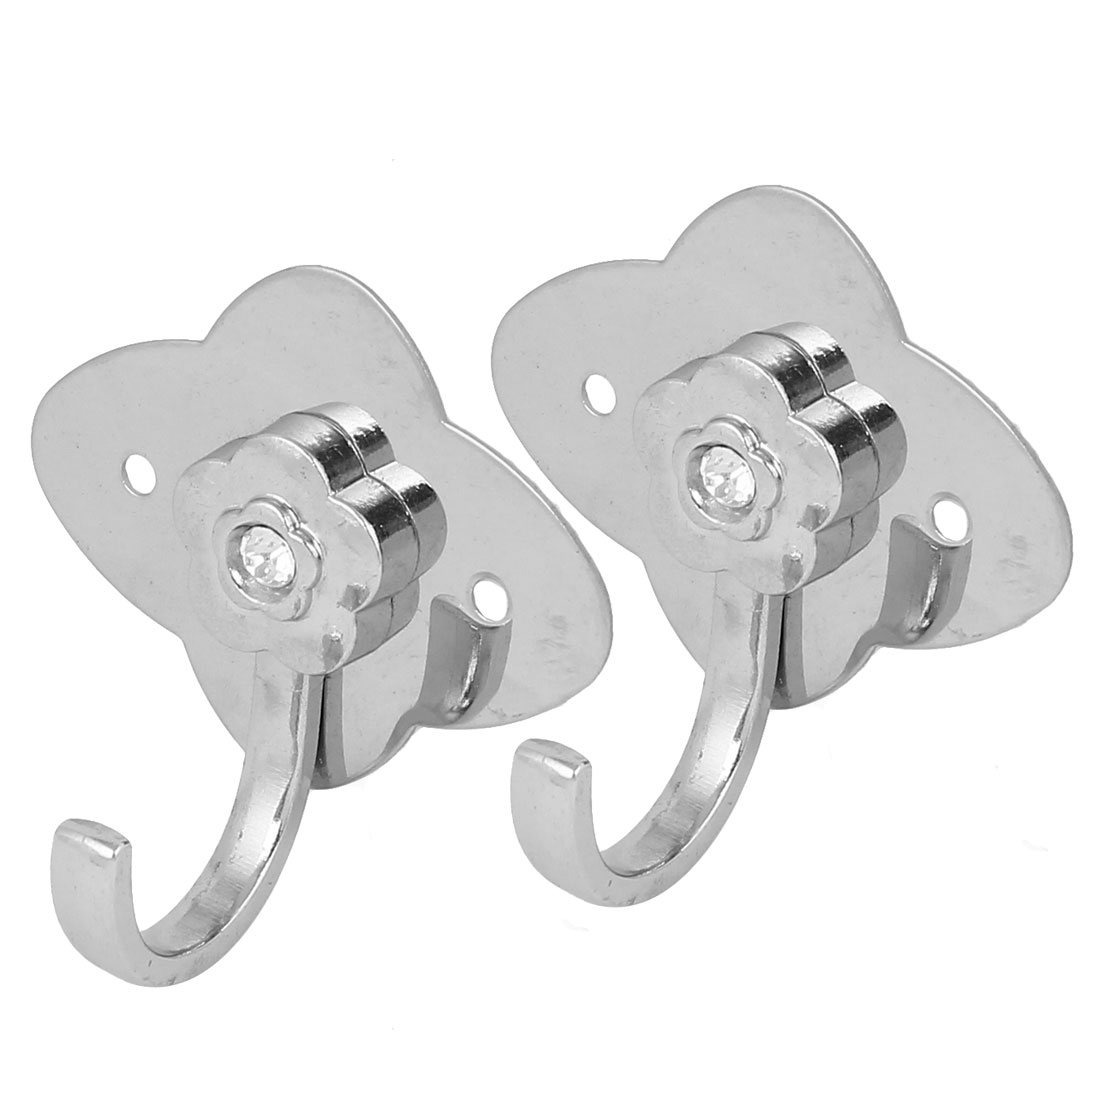 Bathroom Clothes Flower Shape Stainless Steel Wall Mounted Hanger Hooks 2 Pcs